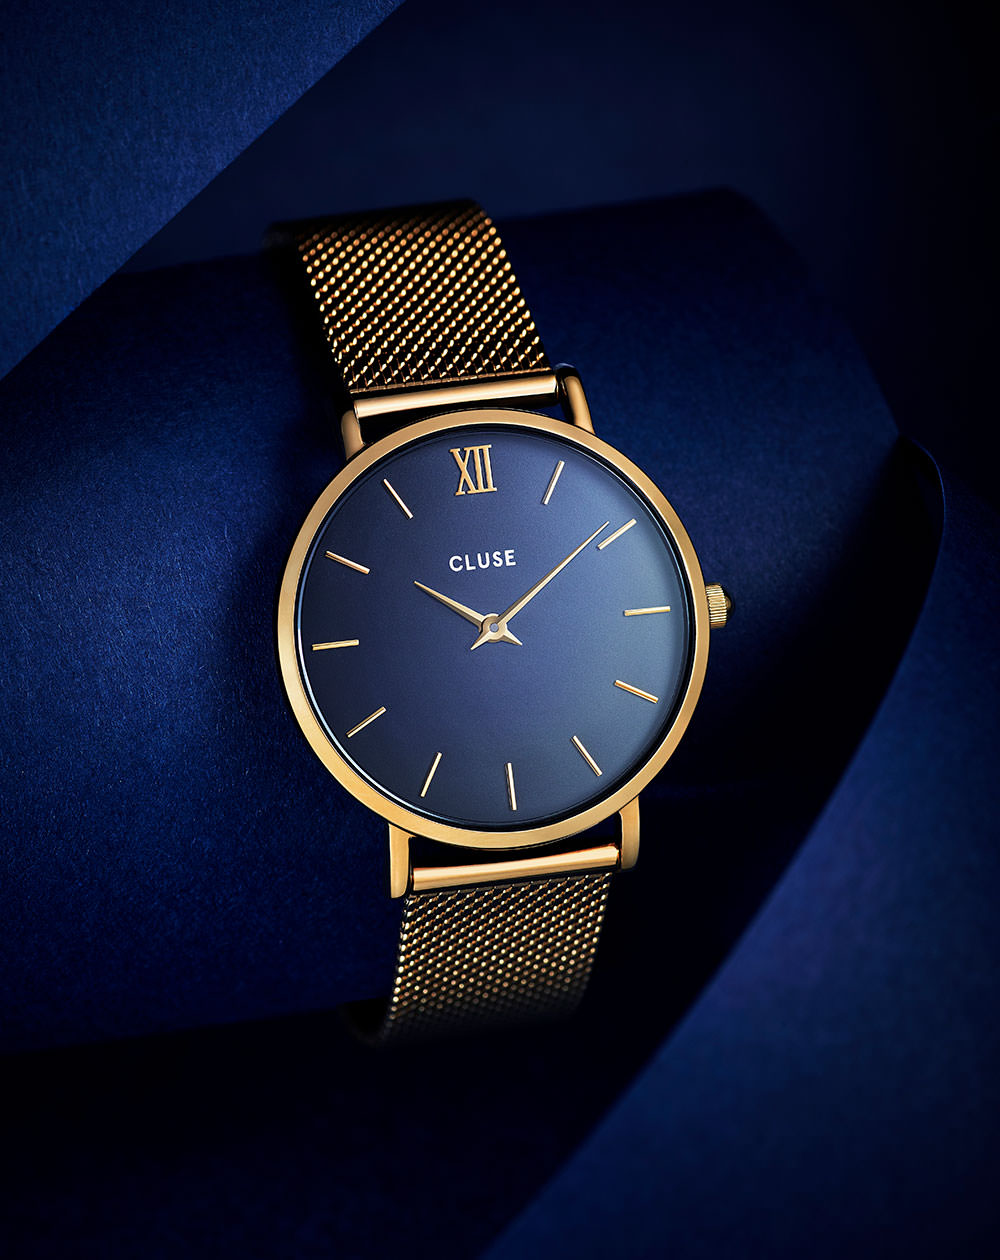 navy cluse watch photography editorial kirsty owen melbourne